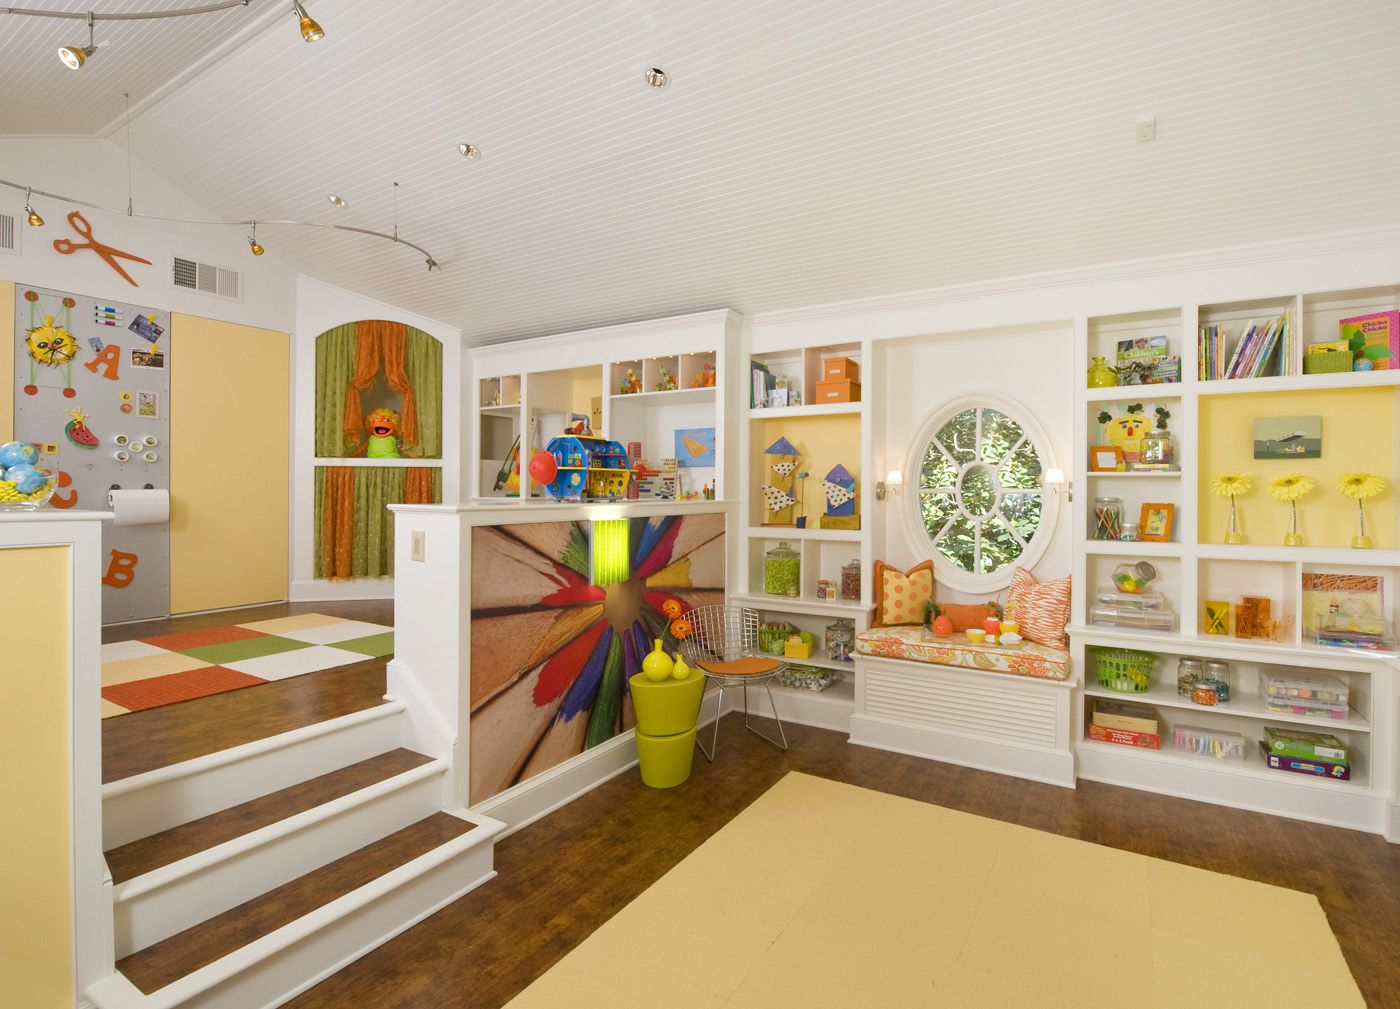 Elegant 40 Kids Playroom Design Ideas That Usher In Colorful Joy Photo Gallery